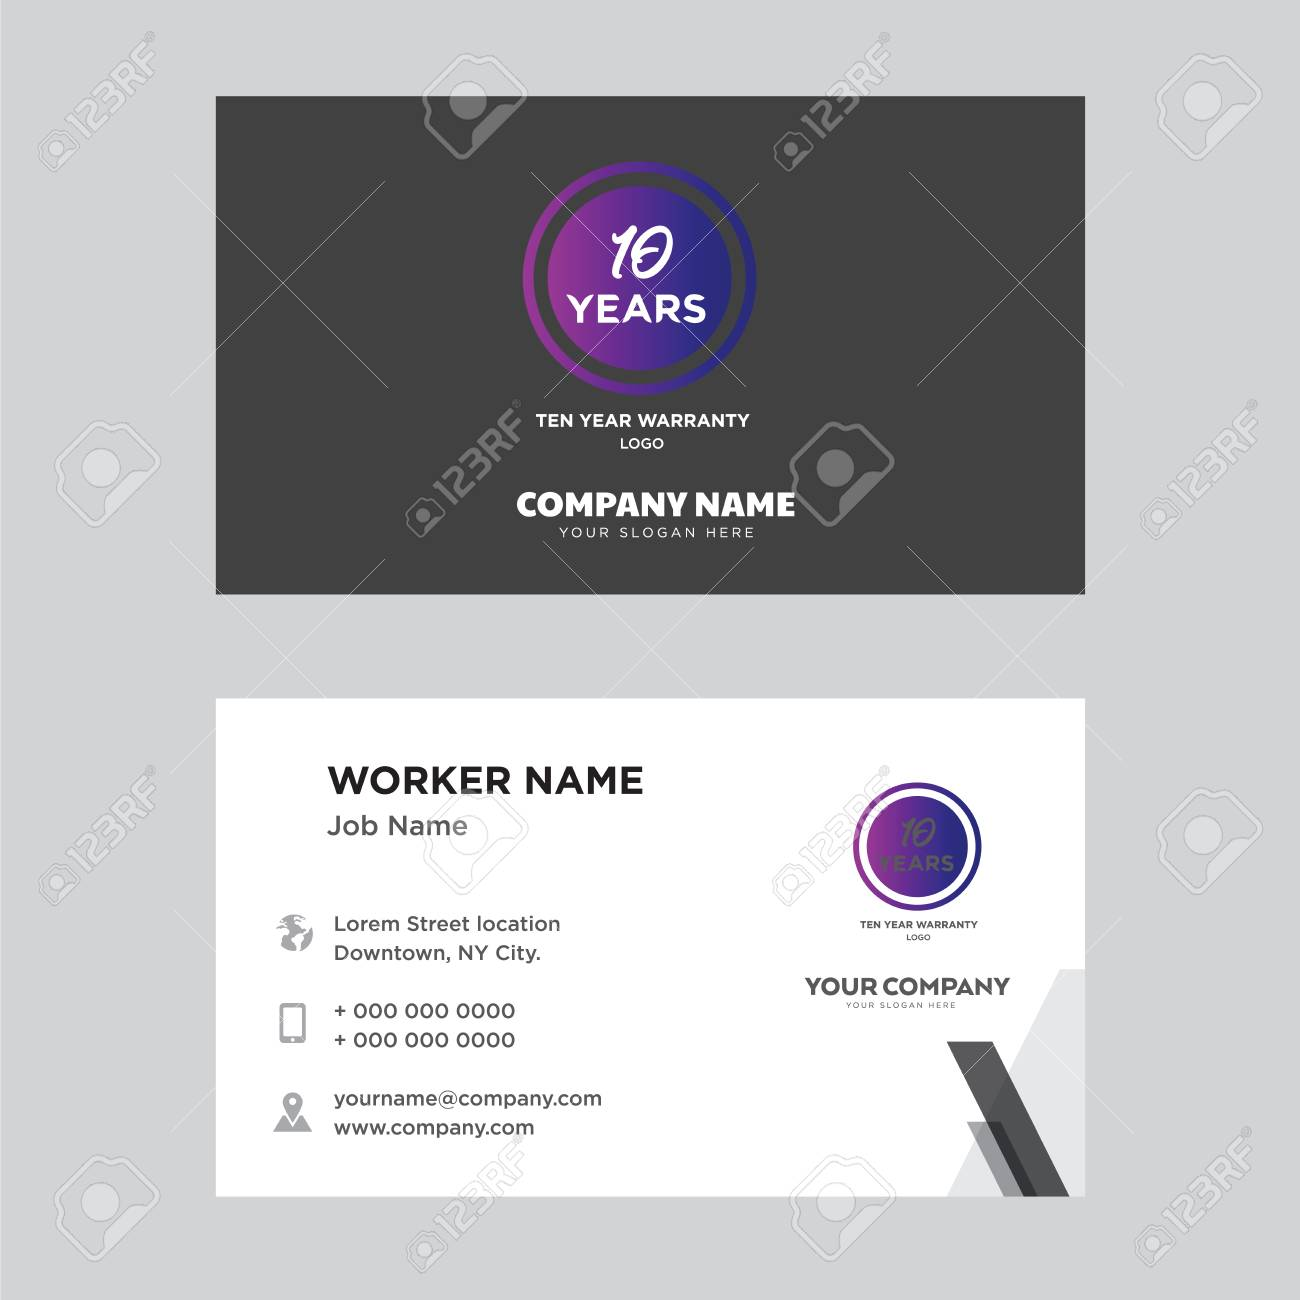 Ten Years Warranty Business Card Design Template Visiting For Royalty Free Cliparts Vectors And Stock Illustration Image 100957392